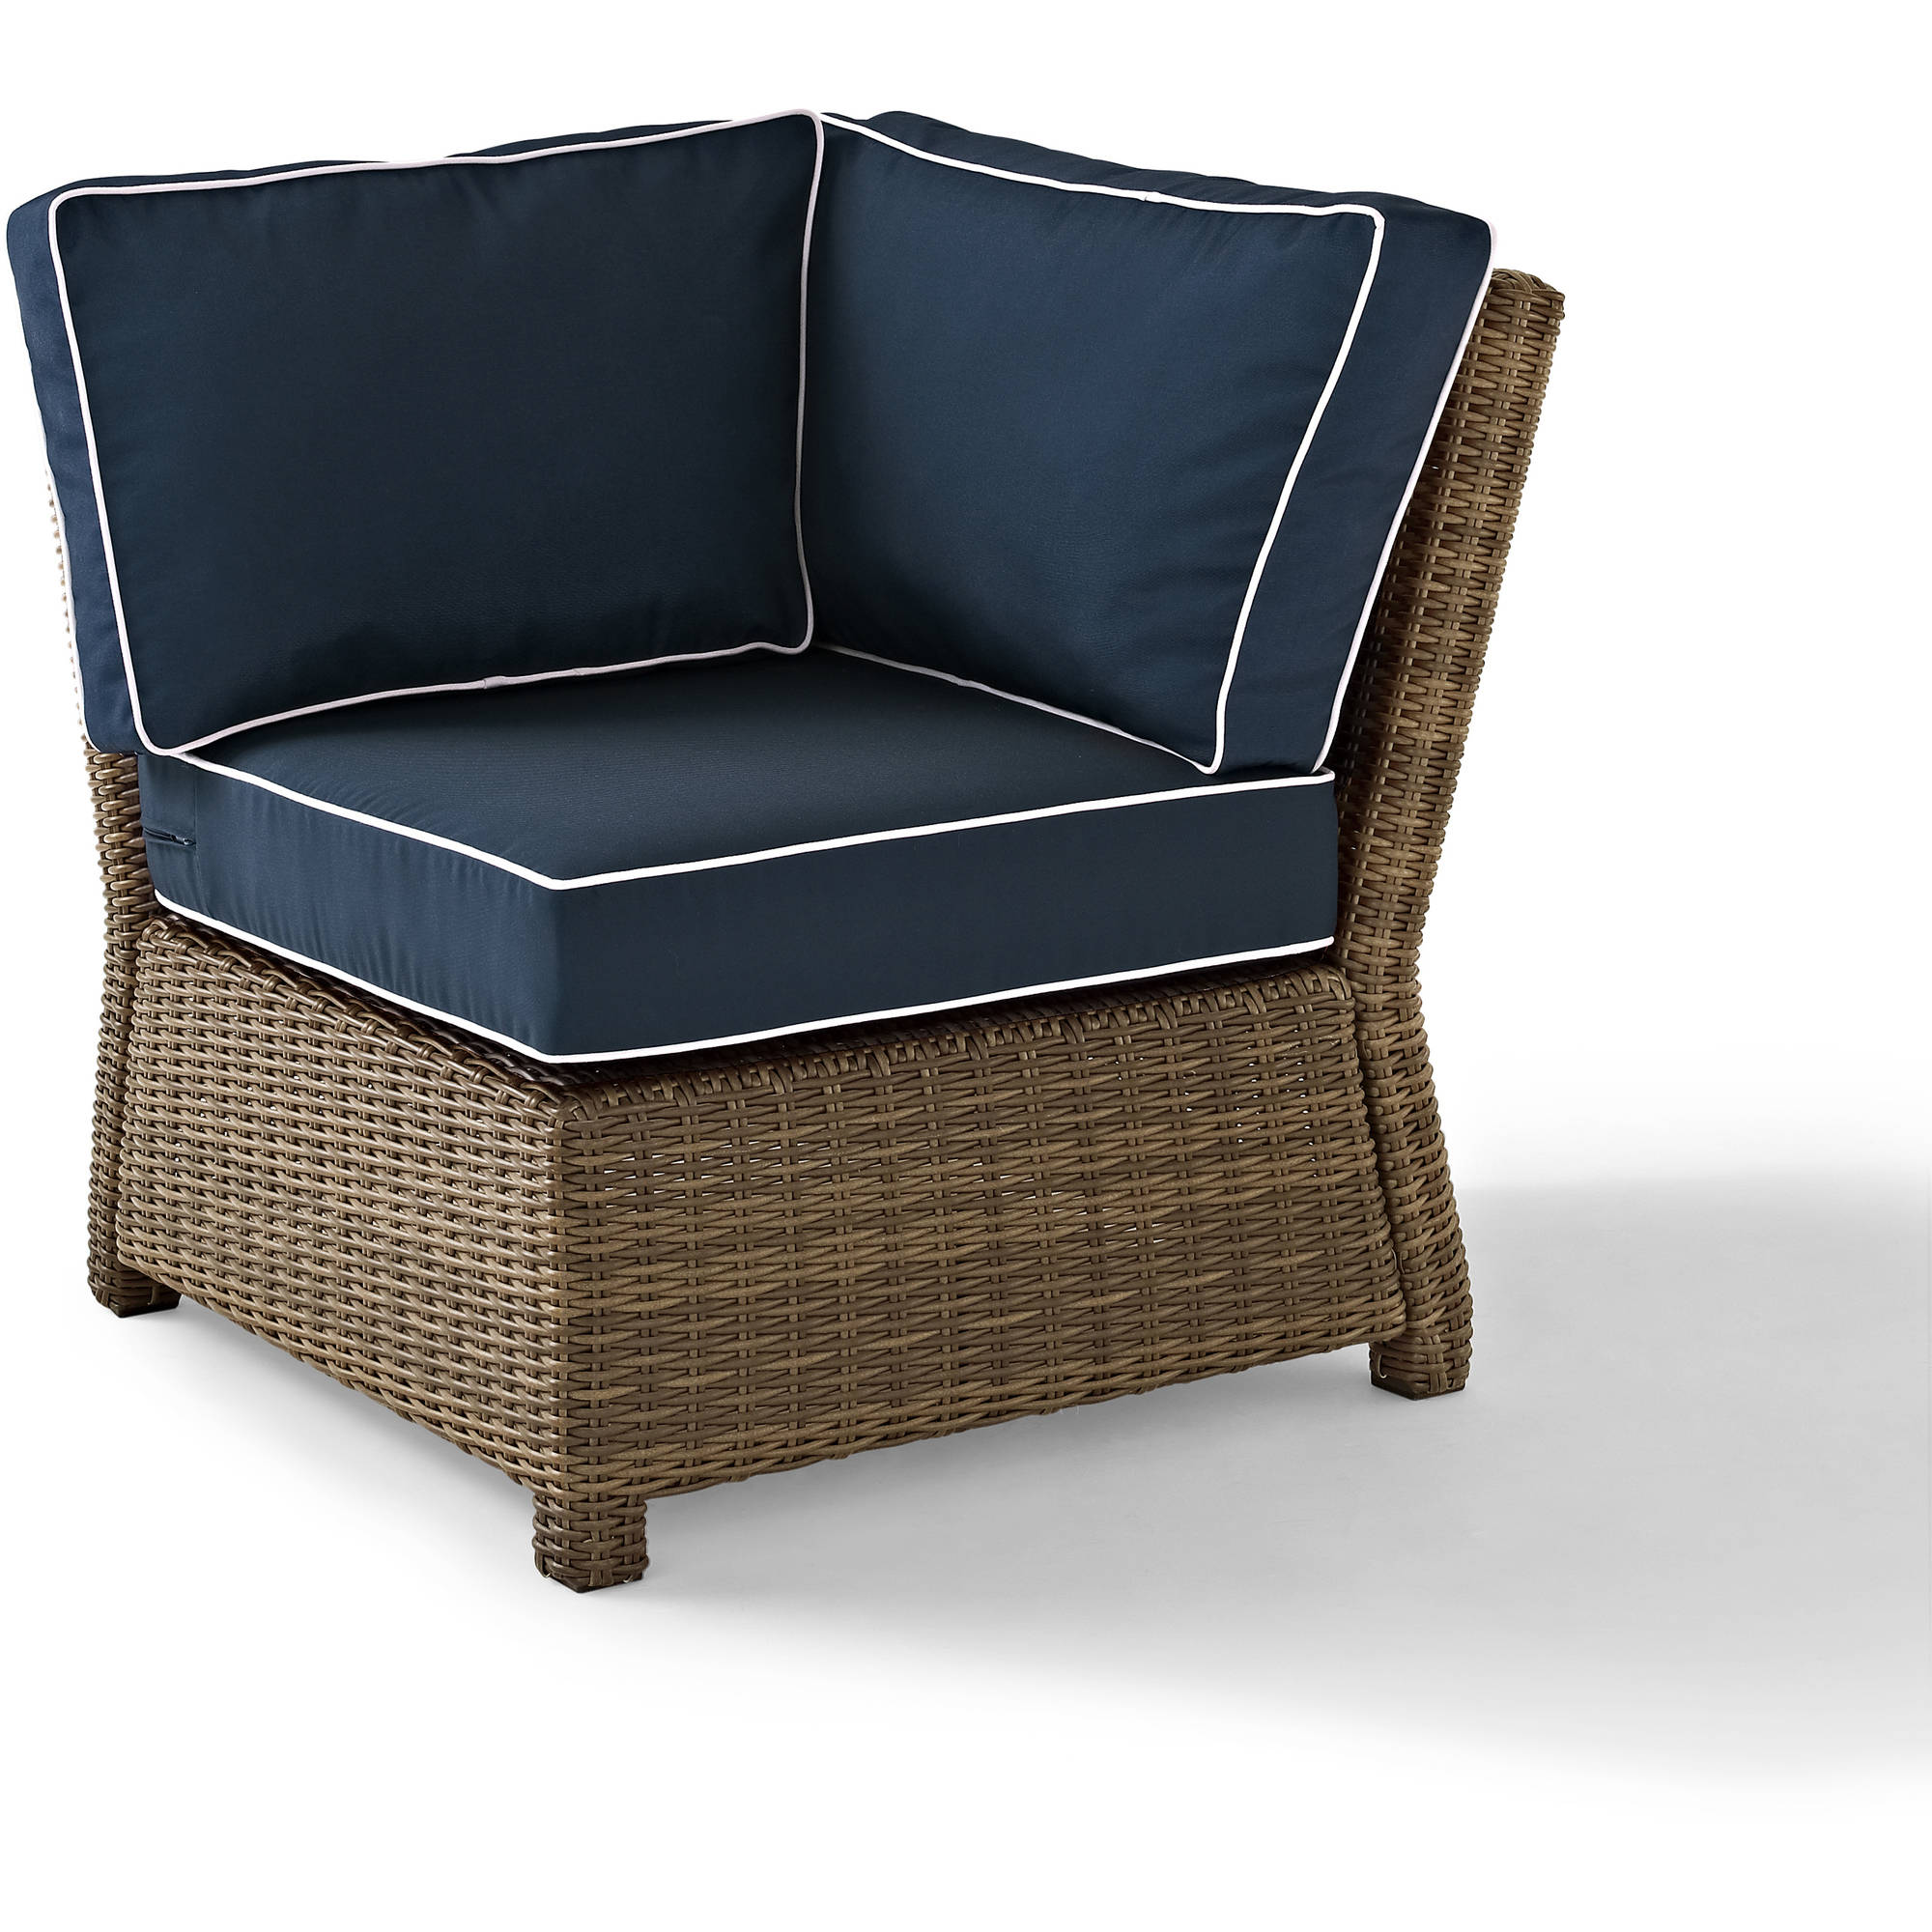 Crosley Furniture Bradenton Outdoor Wicker Sectional Corner Chair with Navy Cushions